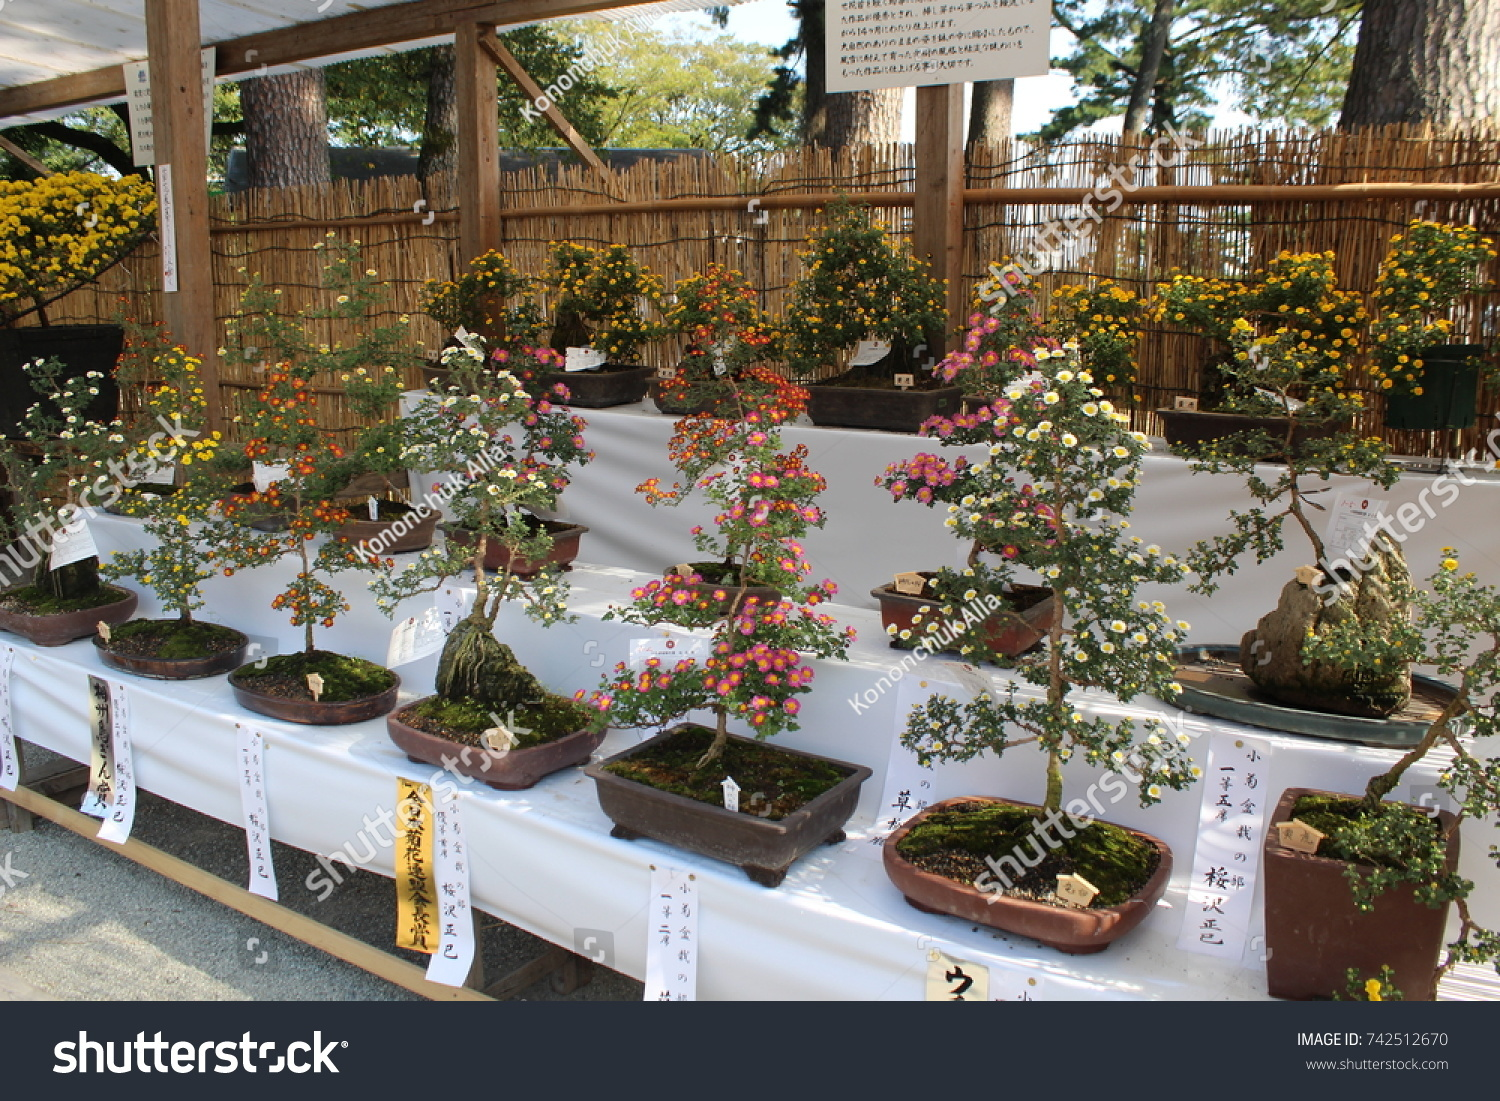 Chrysanthemum Festival On Public Display Odawara Stock Photo ...